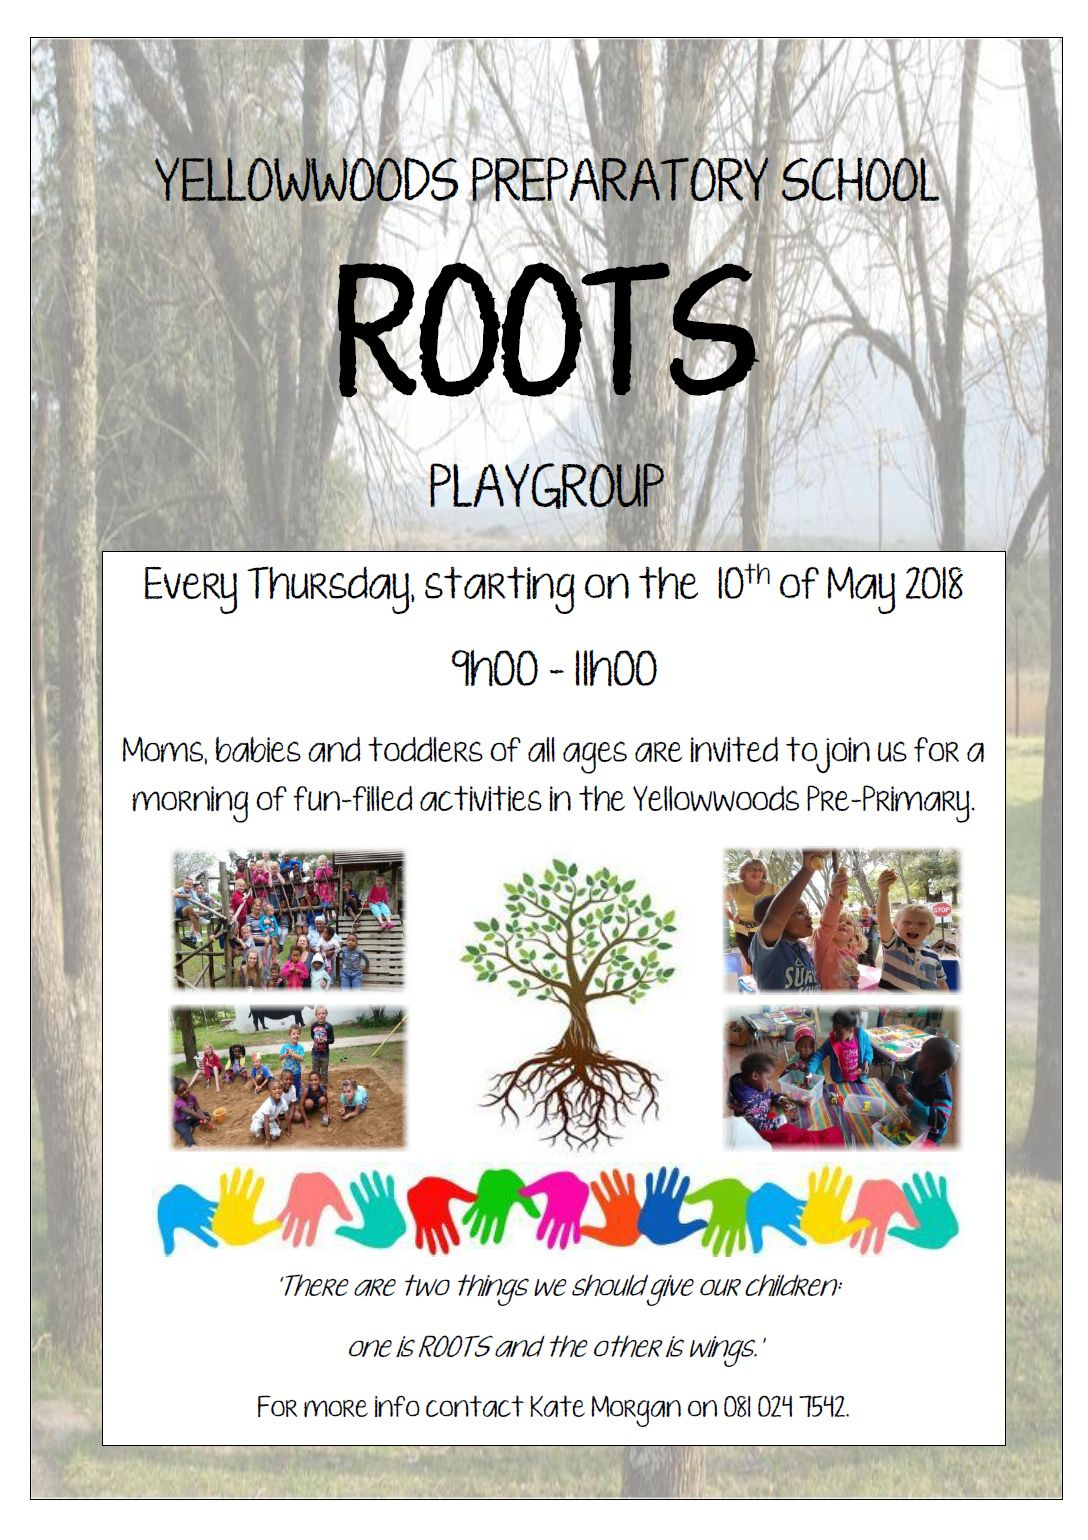 roots_playgroup61.jpg